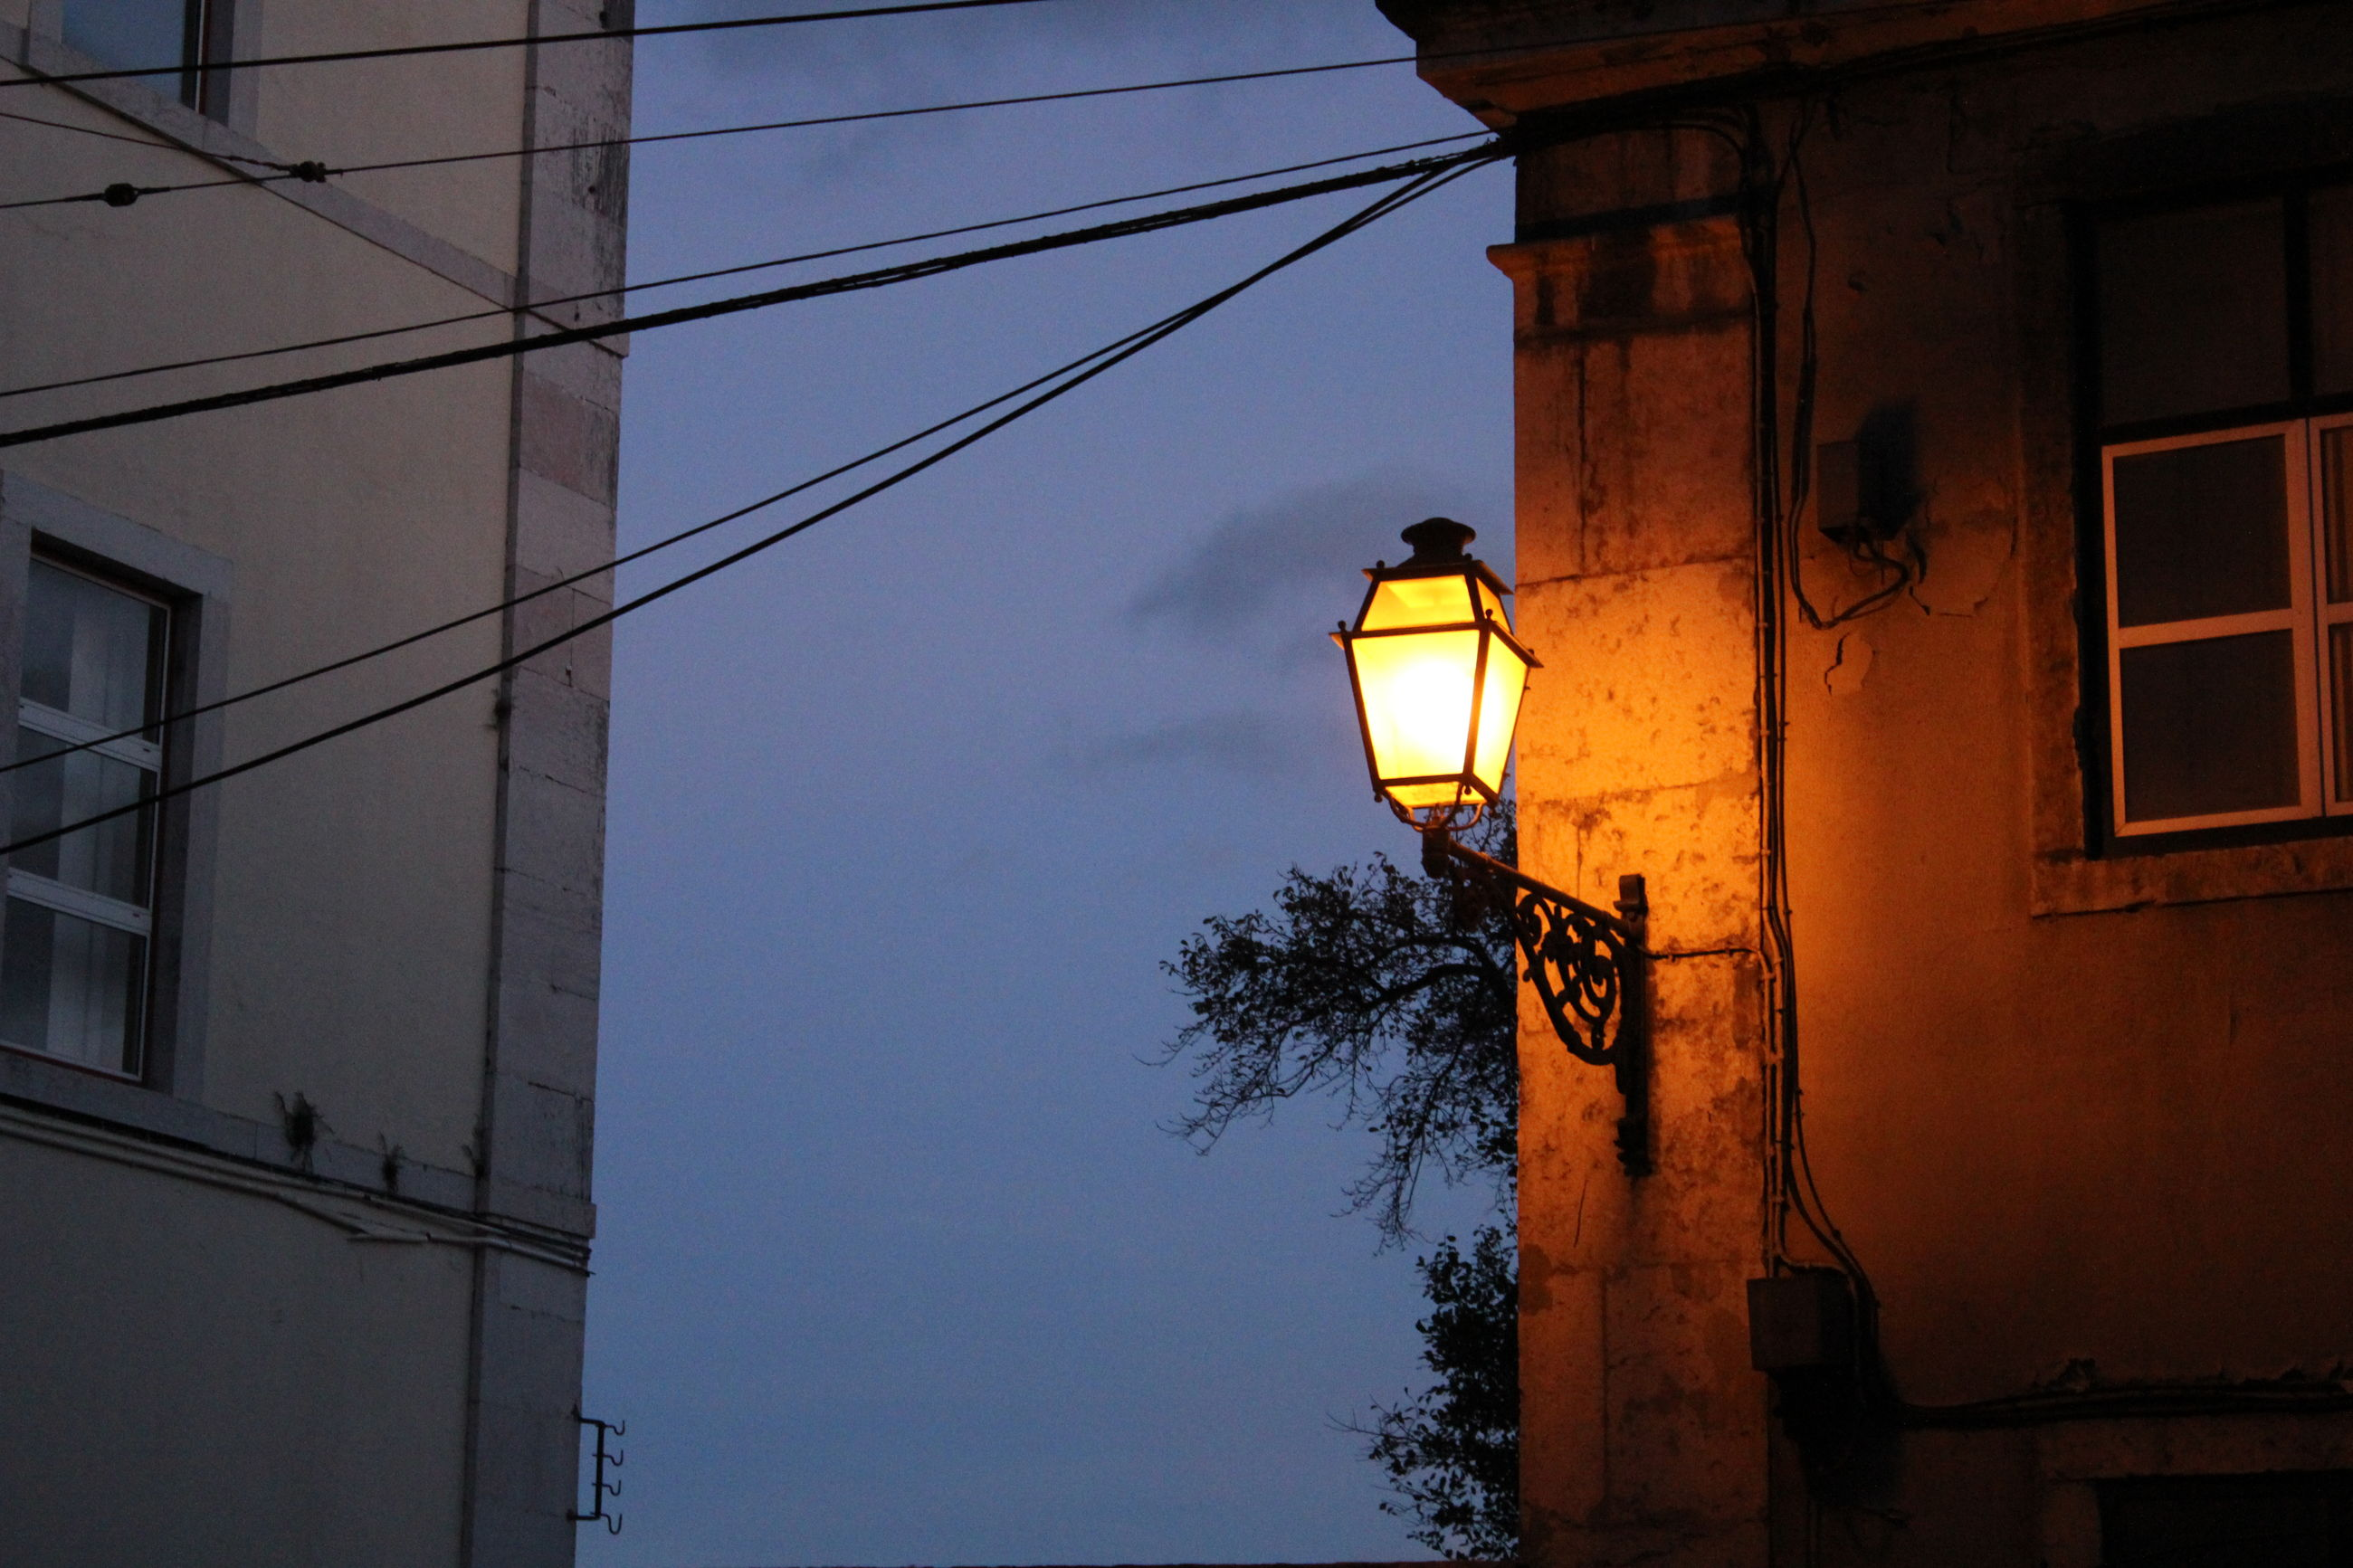 built structure, architecture, building exterior, residential structure, residential building, window, street light, lighting equipment, building, blue, clear sky, illuminated, day, power line, outdoors, no people, residential district